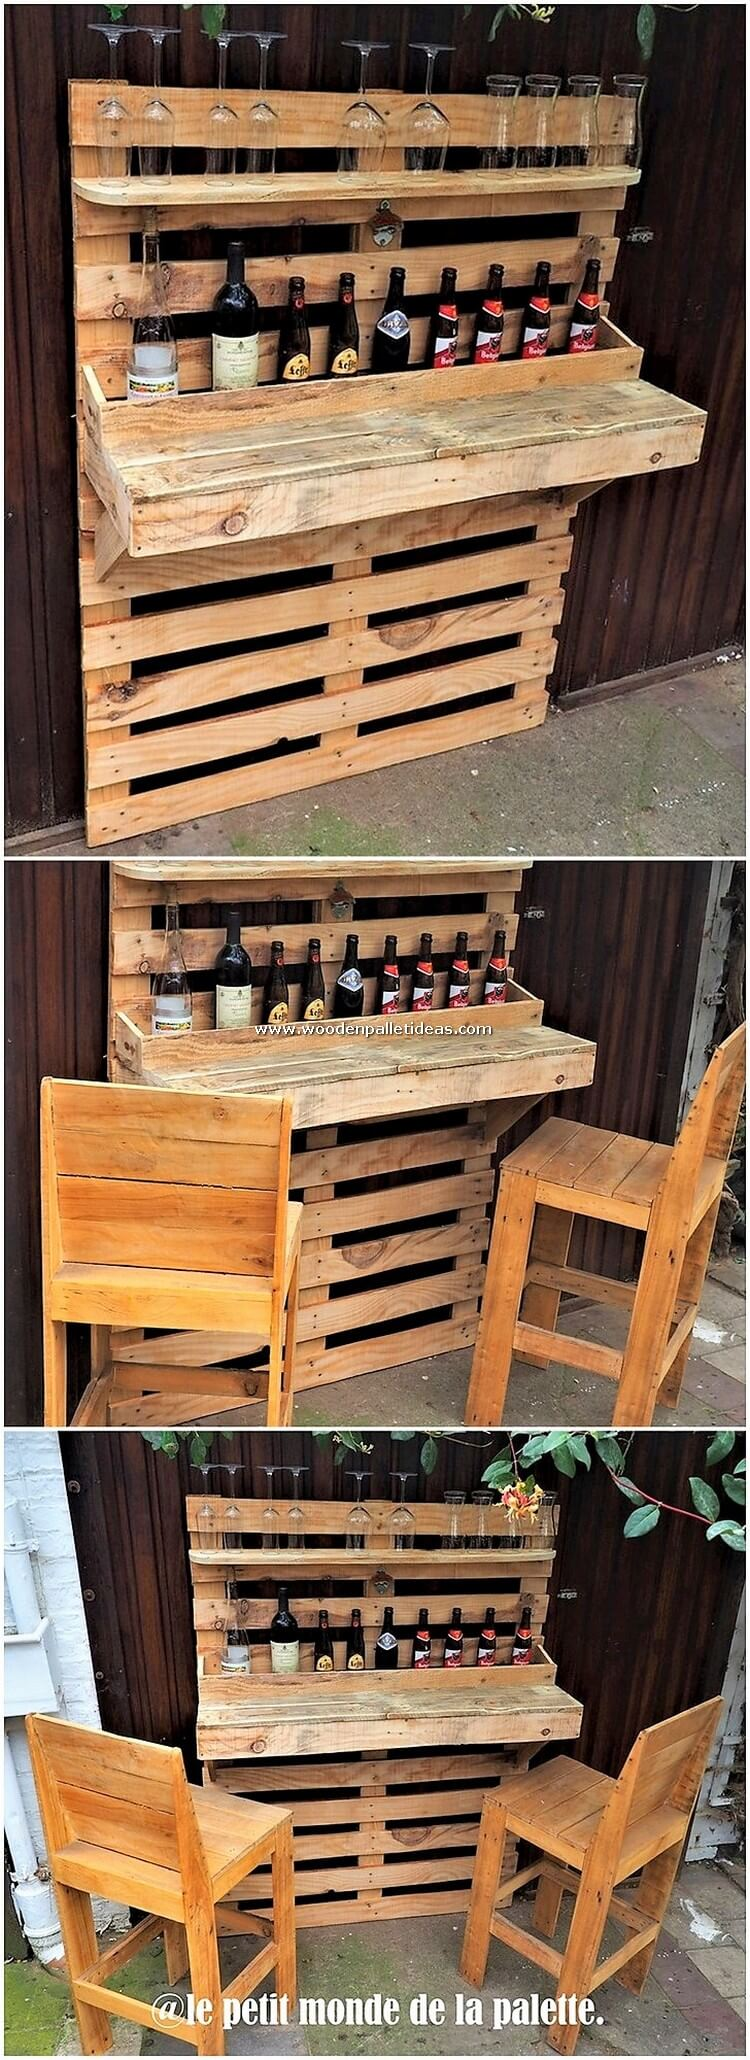 Pallet Bar Counter and Chairs